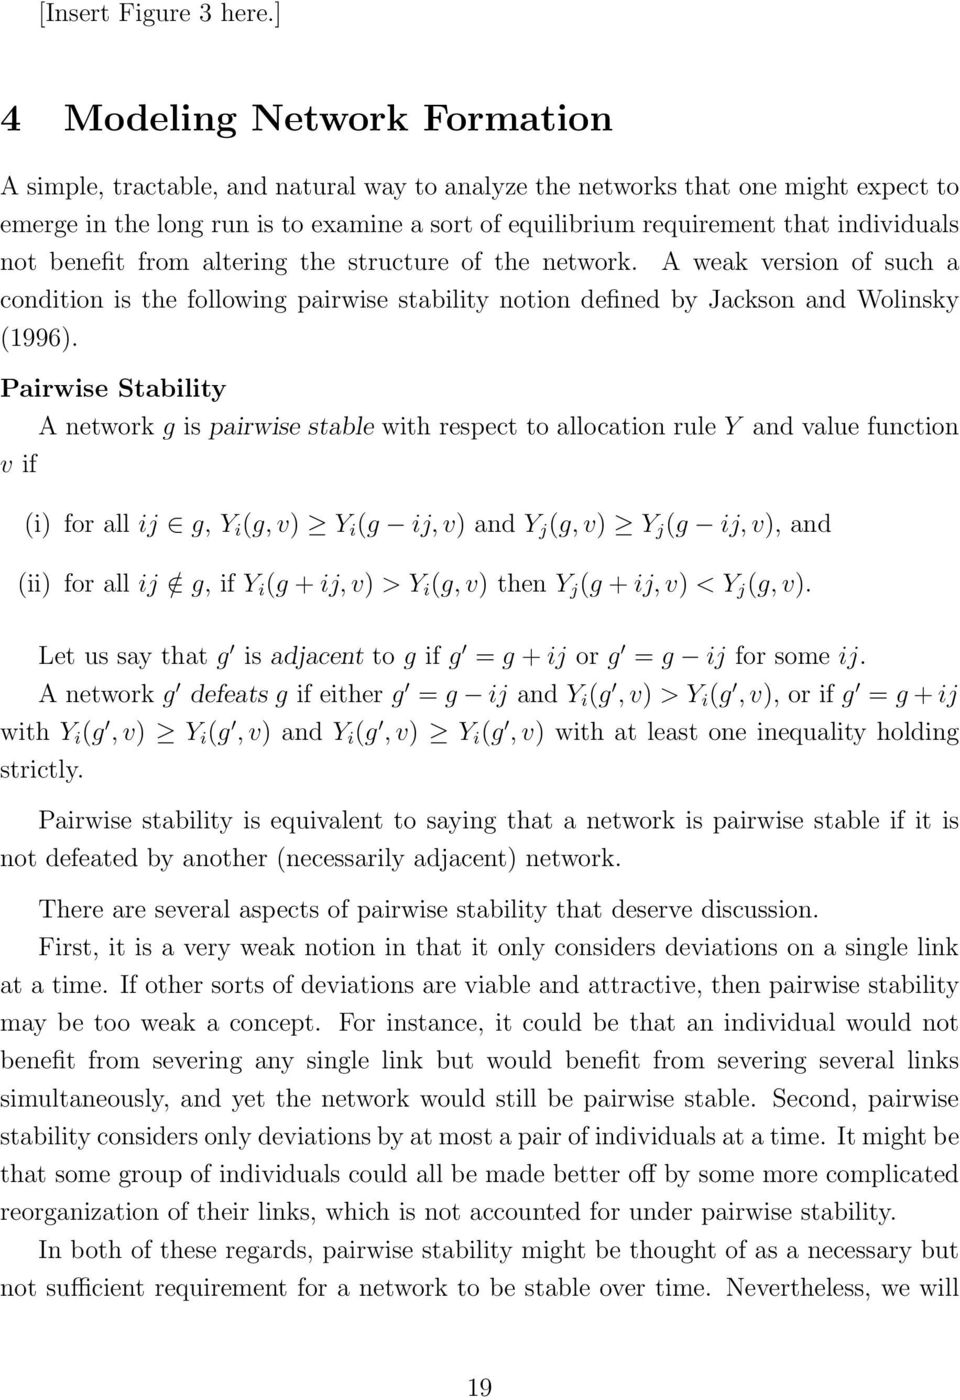 individuals not benefit from altering the structure of the network. A weak version of such a condition is the following pairwise stability notion defined by Jackson and Wolinsky (1996).